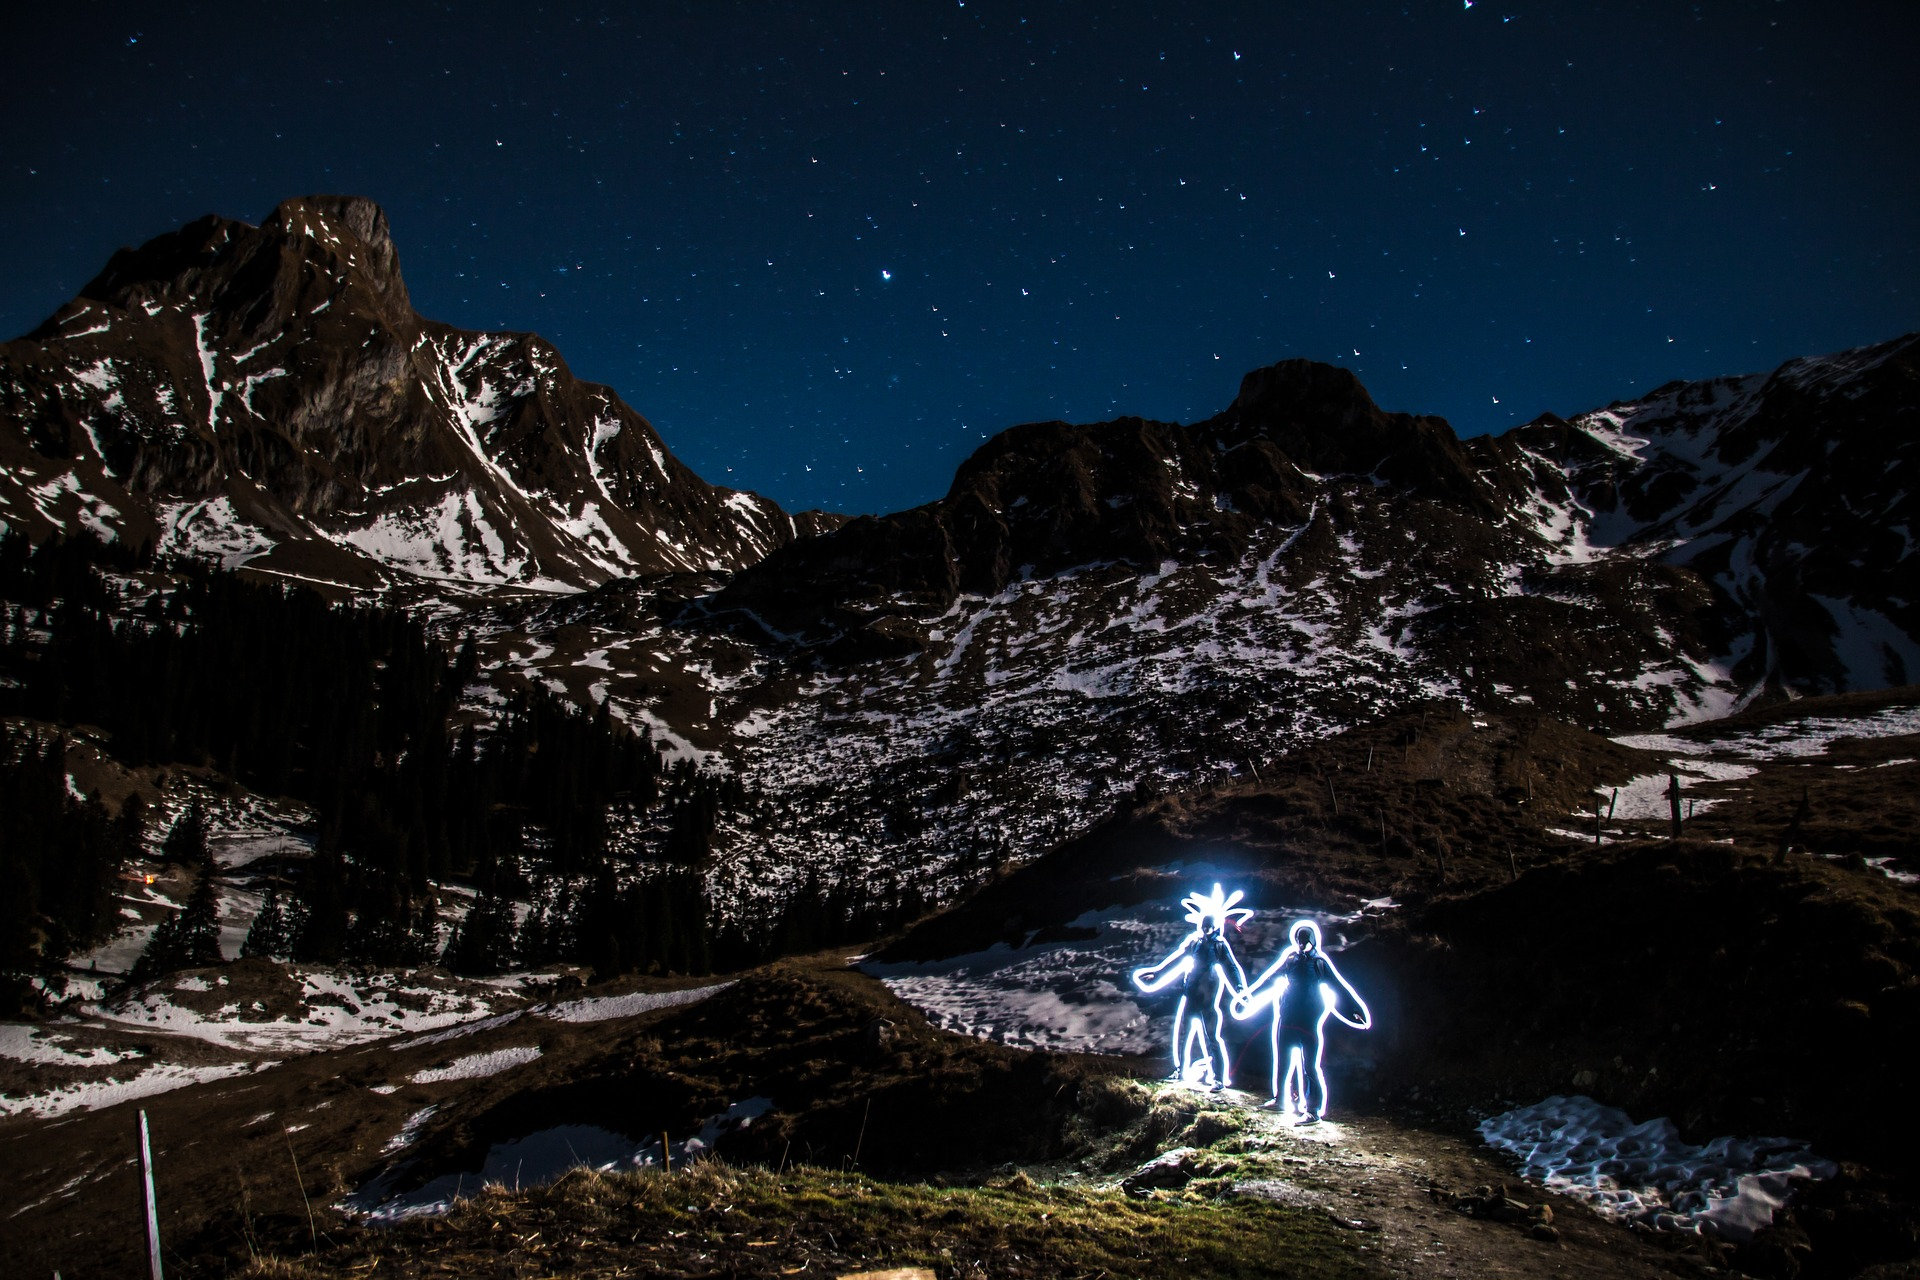 Photo of a snowy mountain range at night, with the stars visible, and in the foreground two figures made out of light looking up at the stars